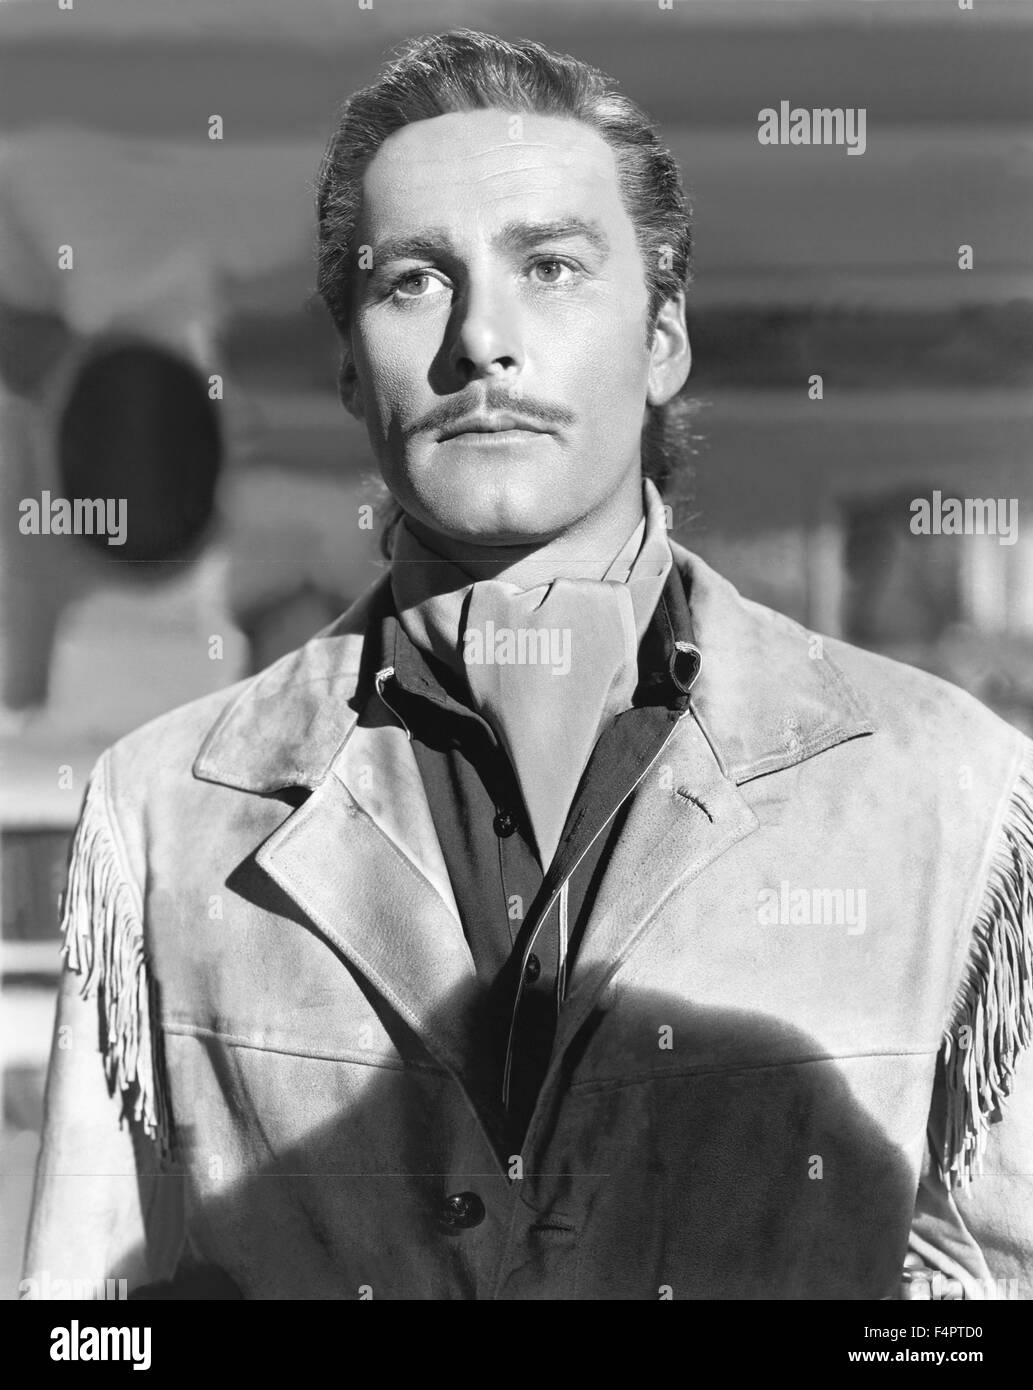 Errol flynn / They Died with Their Boots On / 1941 directed by Raoul Walsh  [Warner Bros. Pictures] - Stock Image